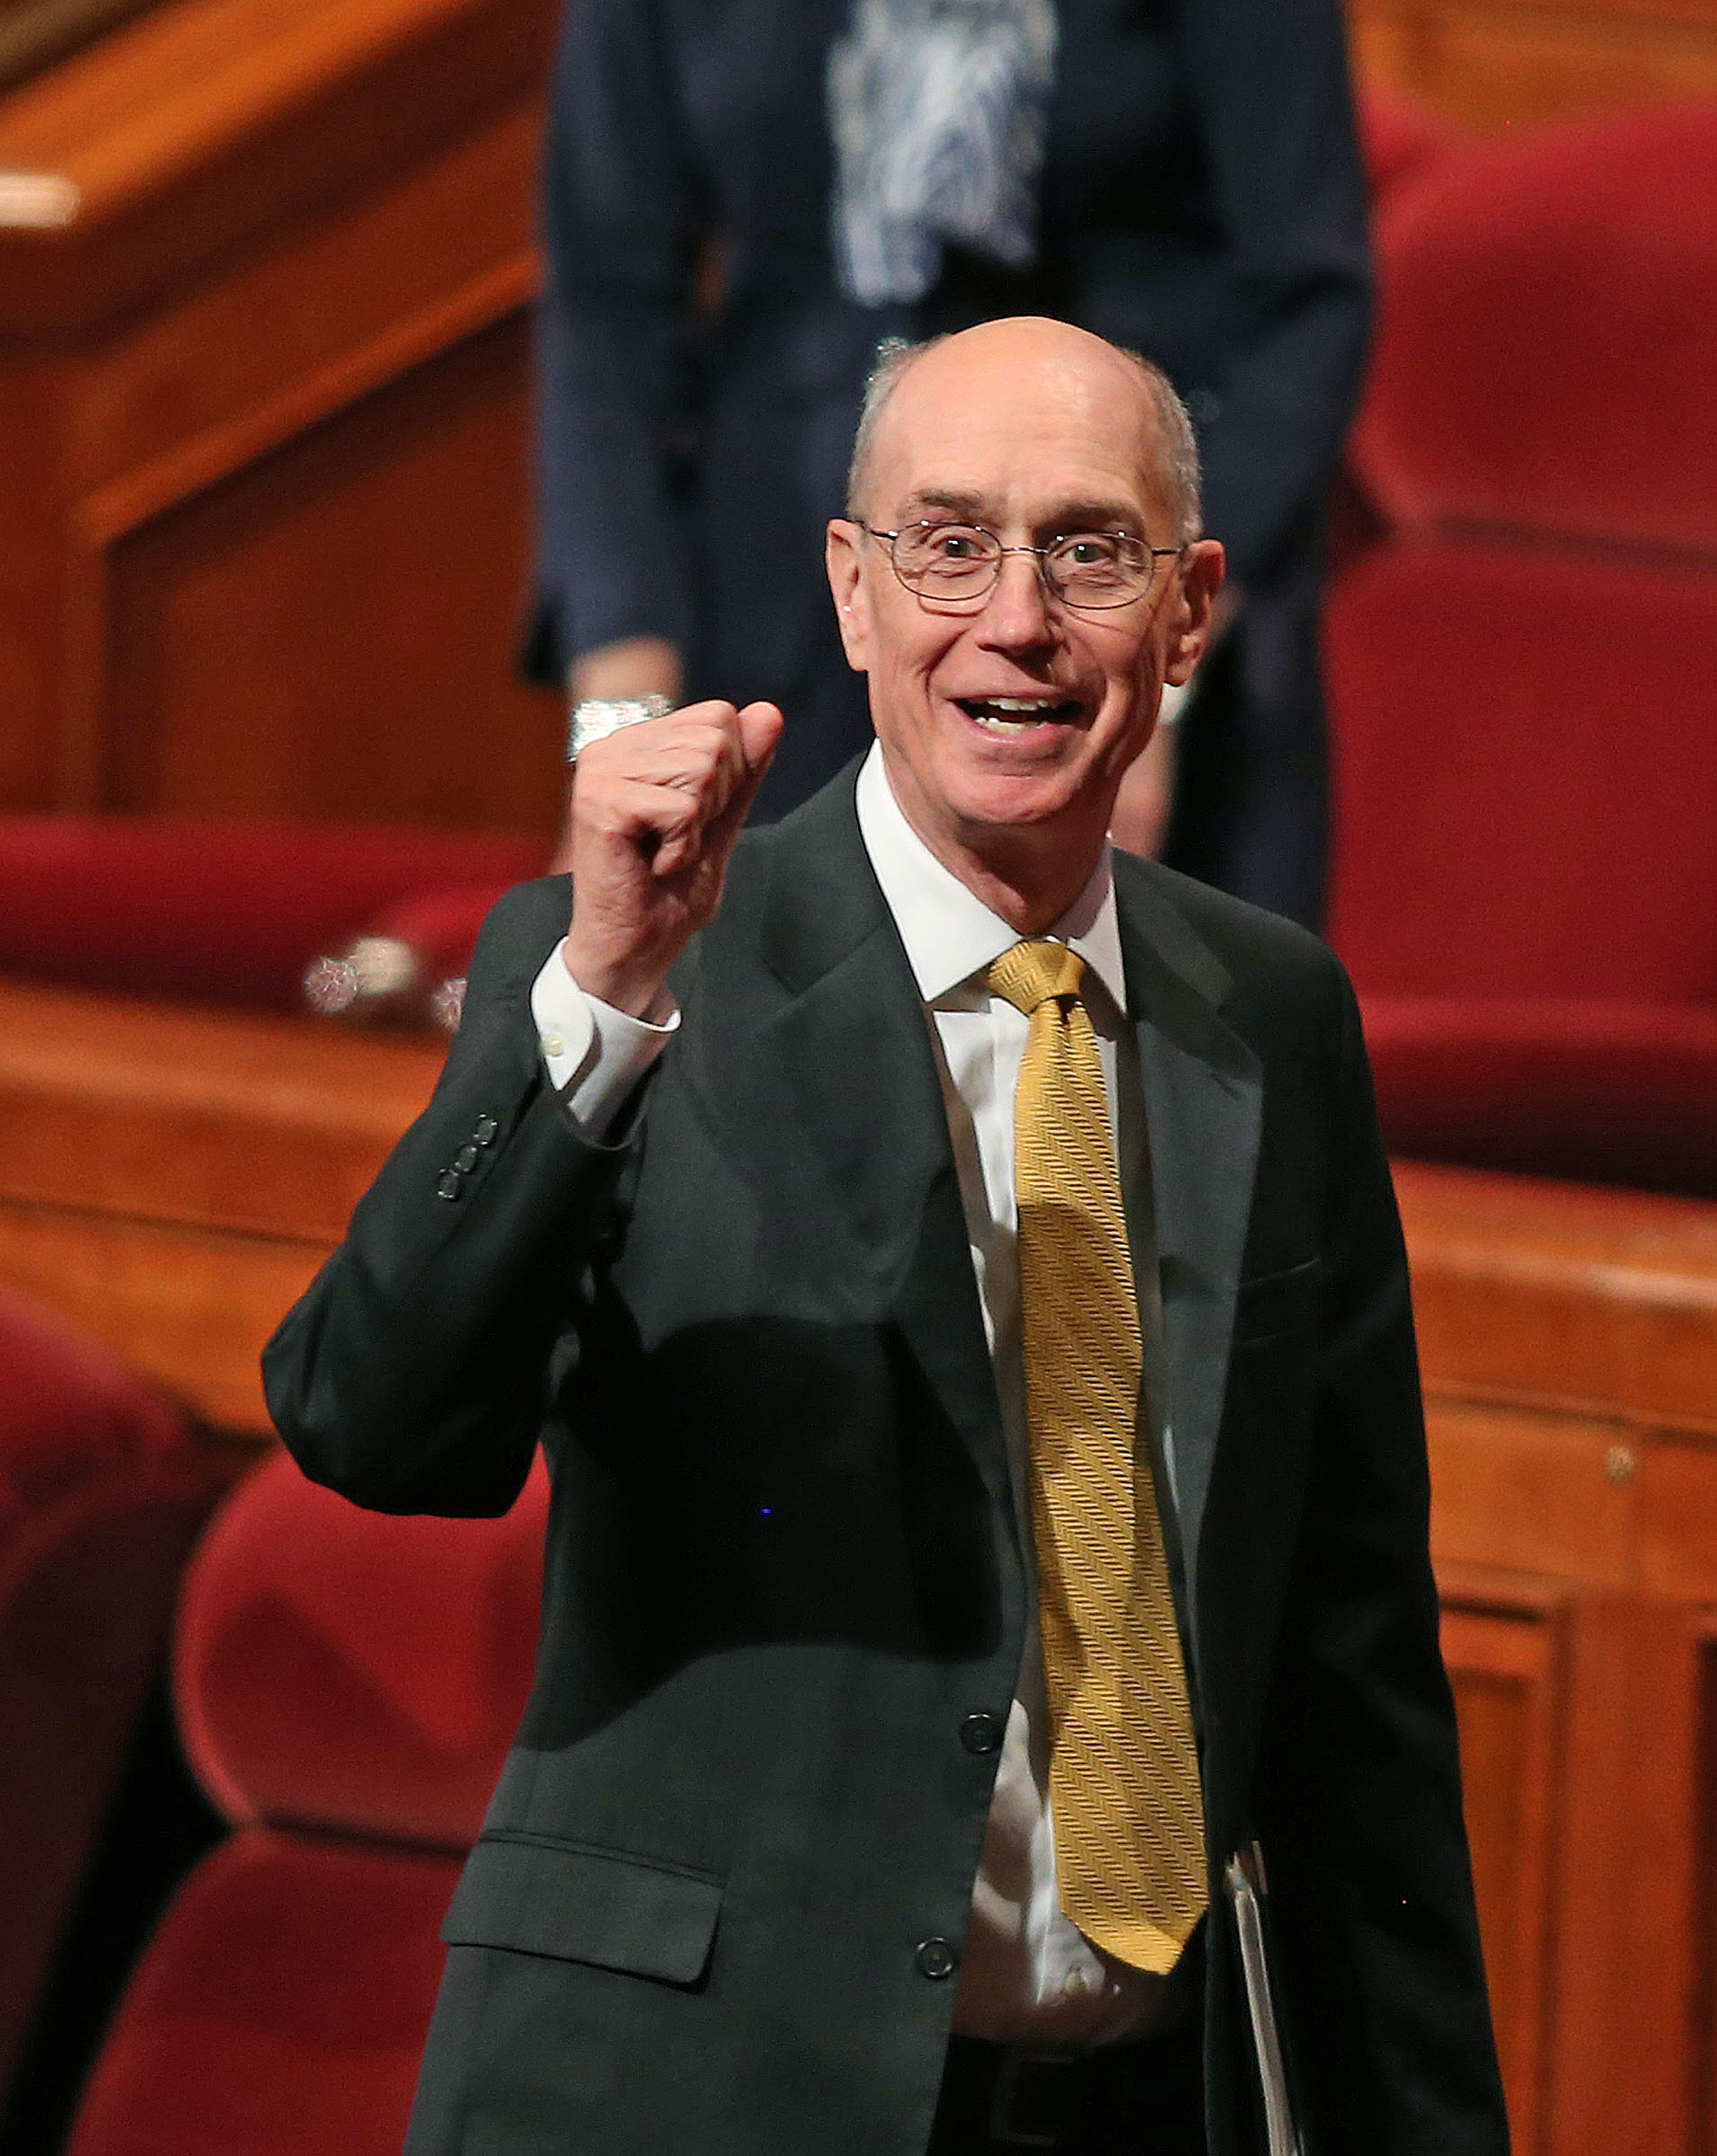 President Henry B. Eyring at the end of the morning session of the 183rd Semiannual General Conference Sunday, Oct. 6, 2013, in Salt Lake City.